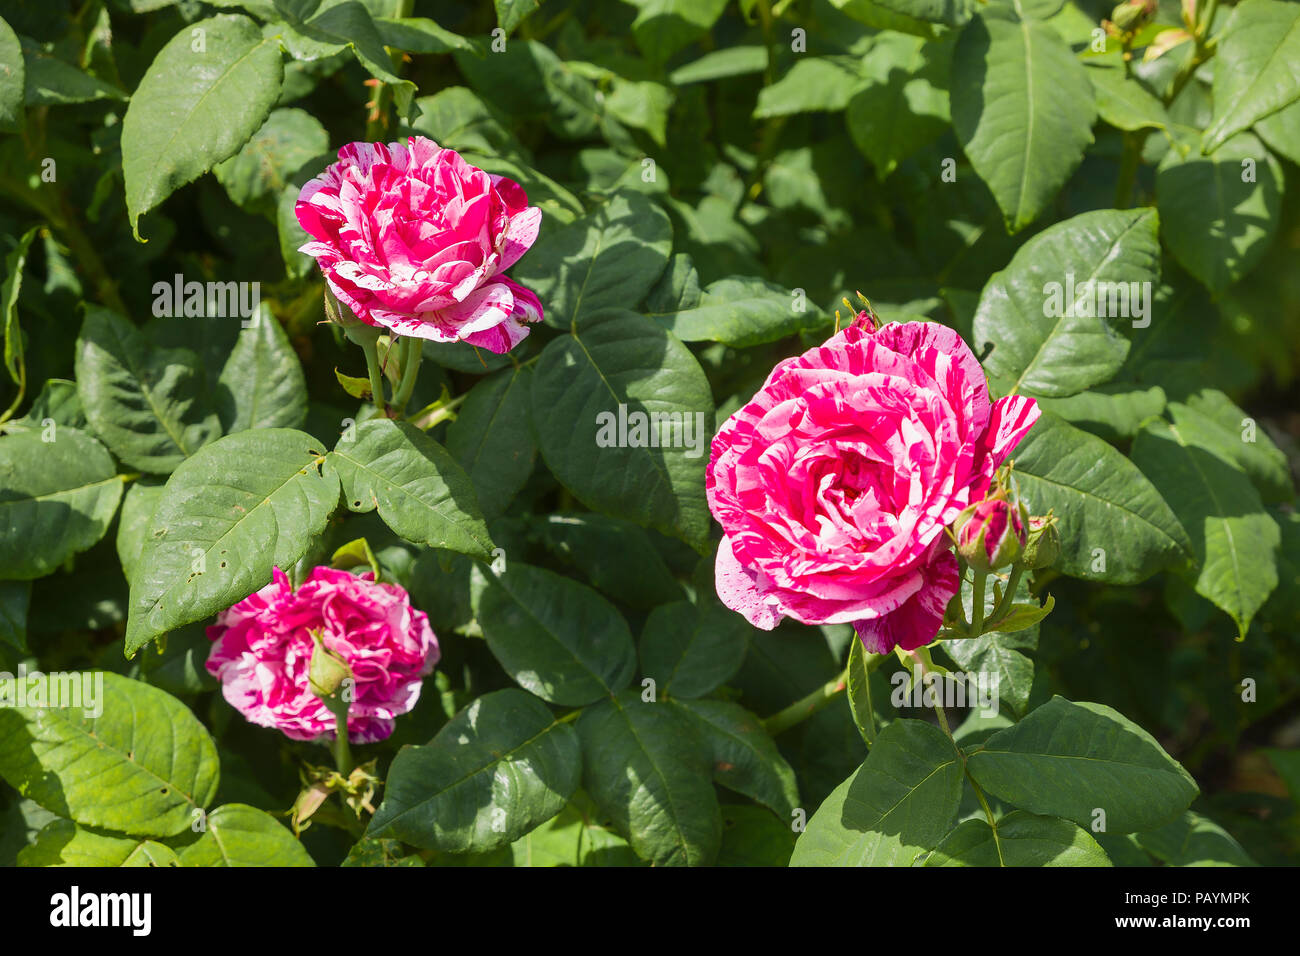 Rose Ferdinand Pichard with striking two-tone coloration flowering in June in UK - Stock Image